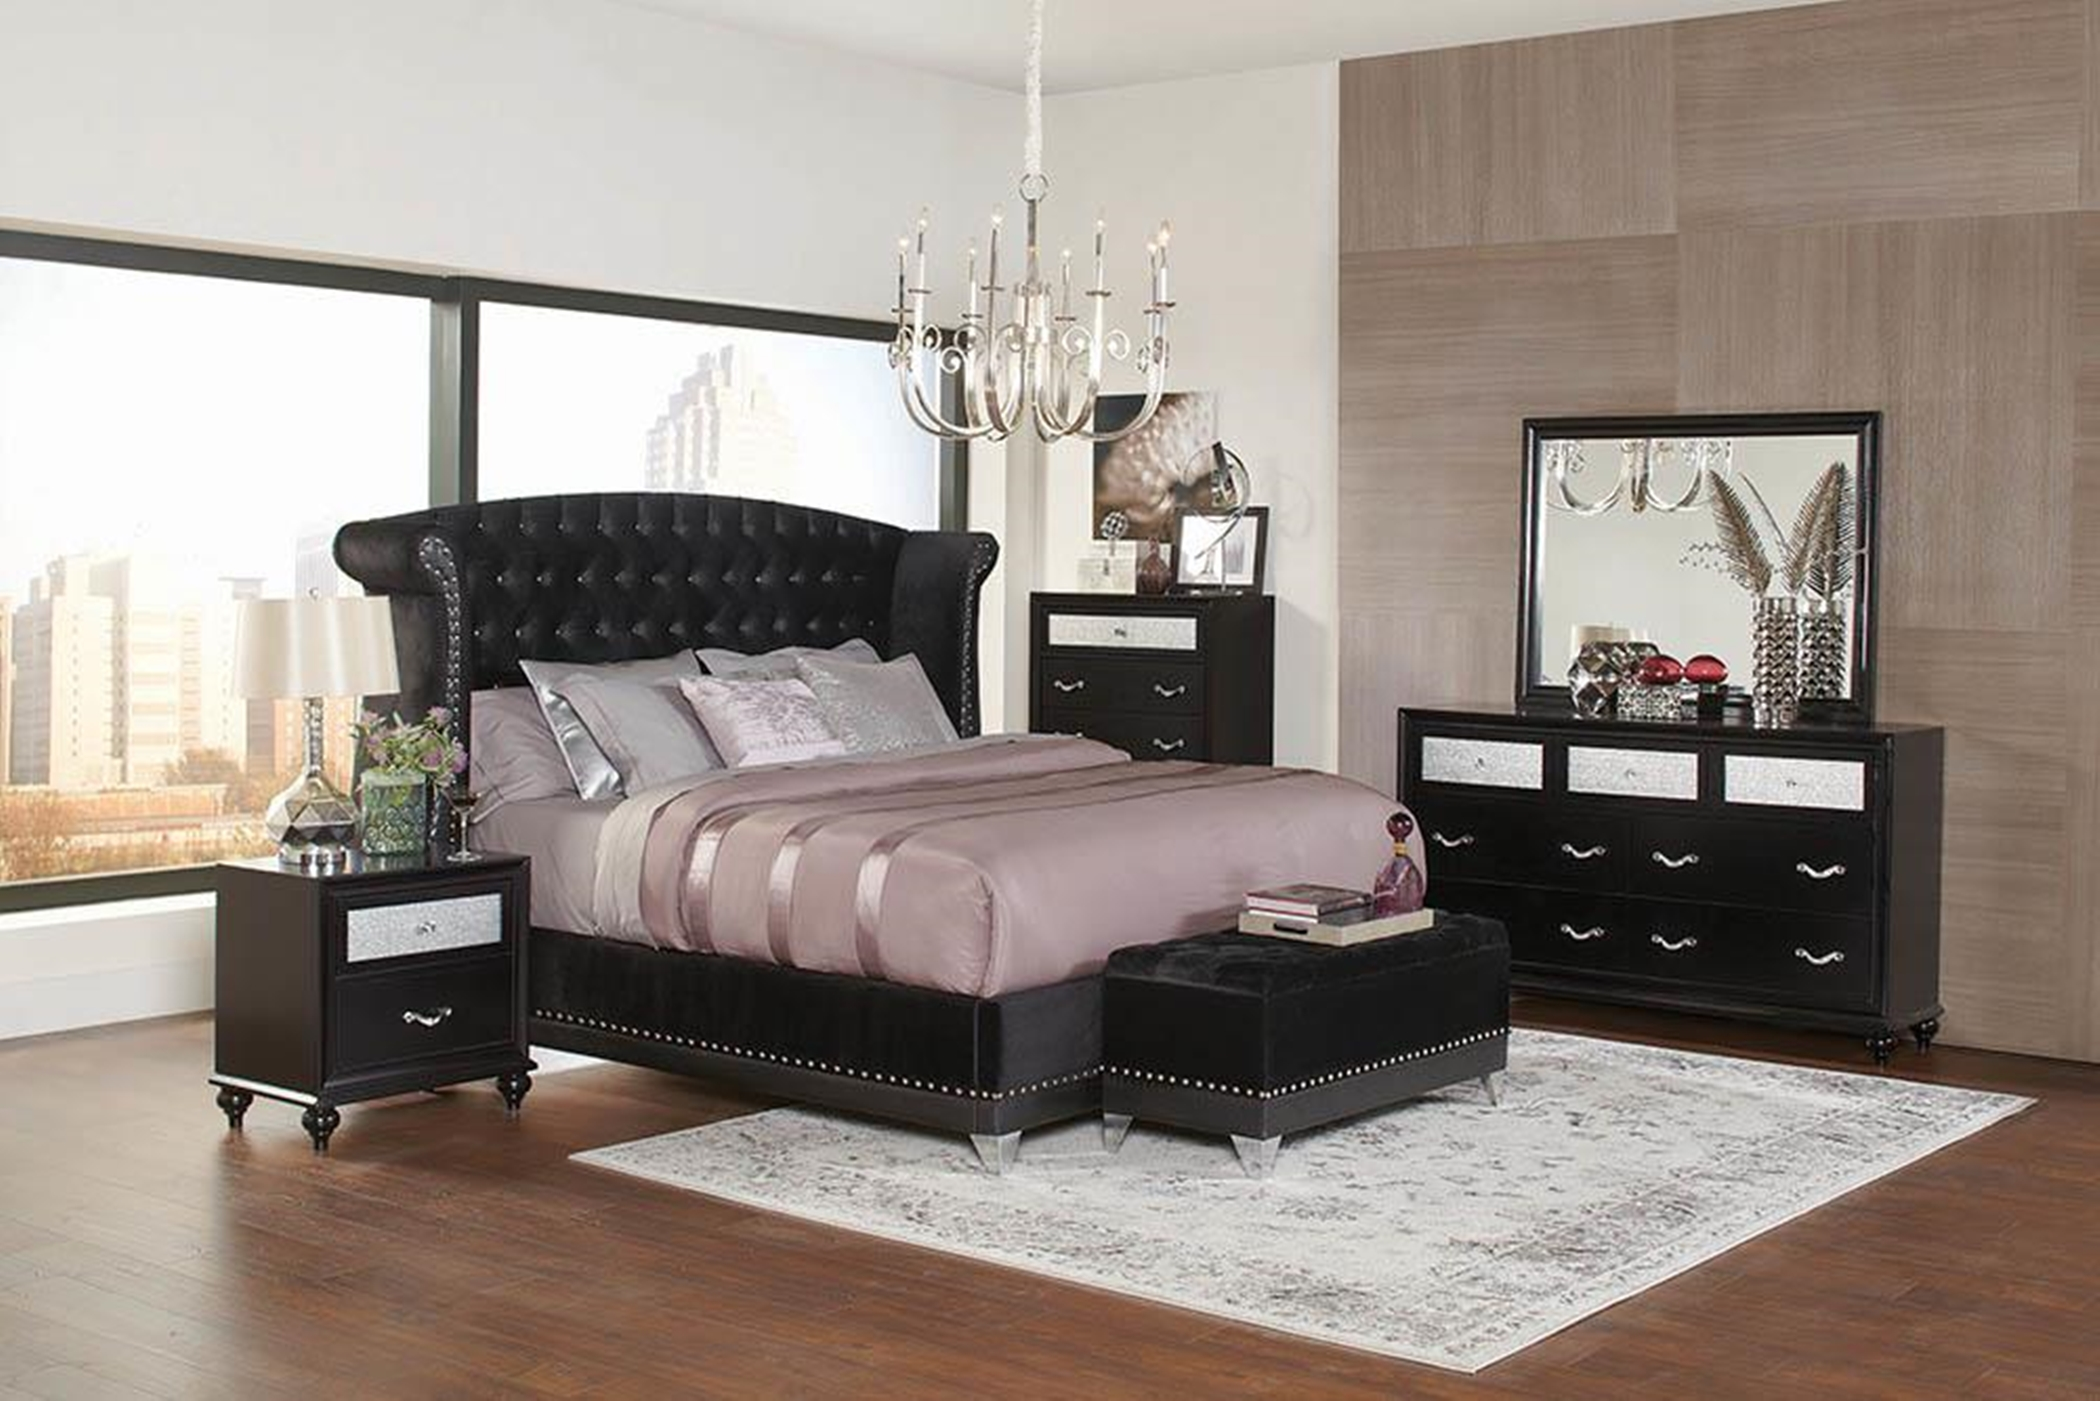 Barzini Black Upholstered Cal. King Bed